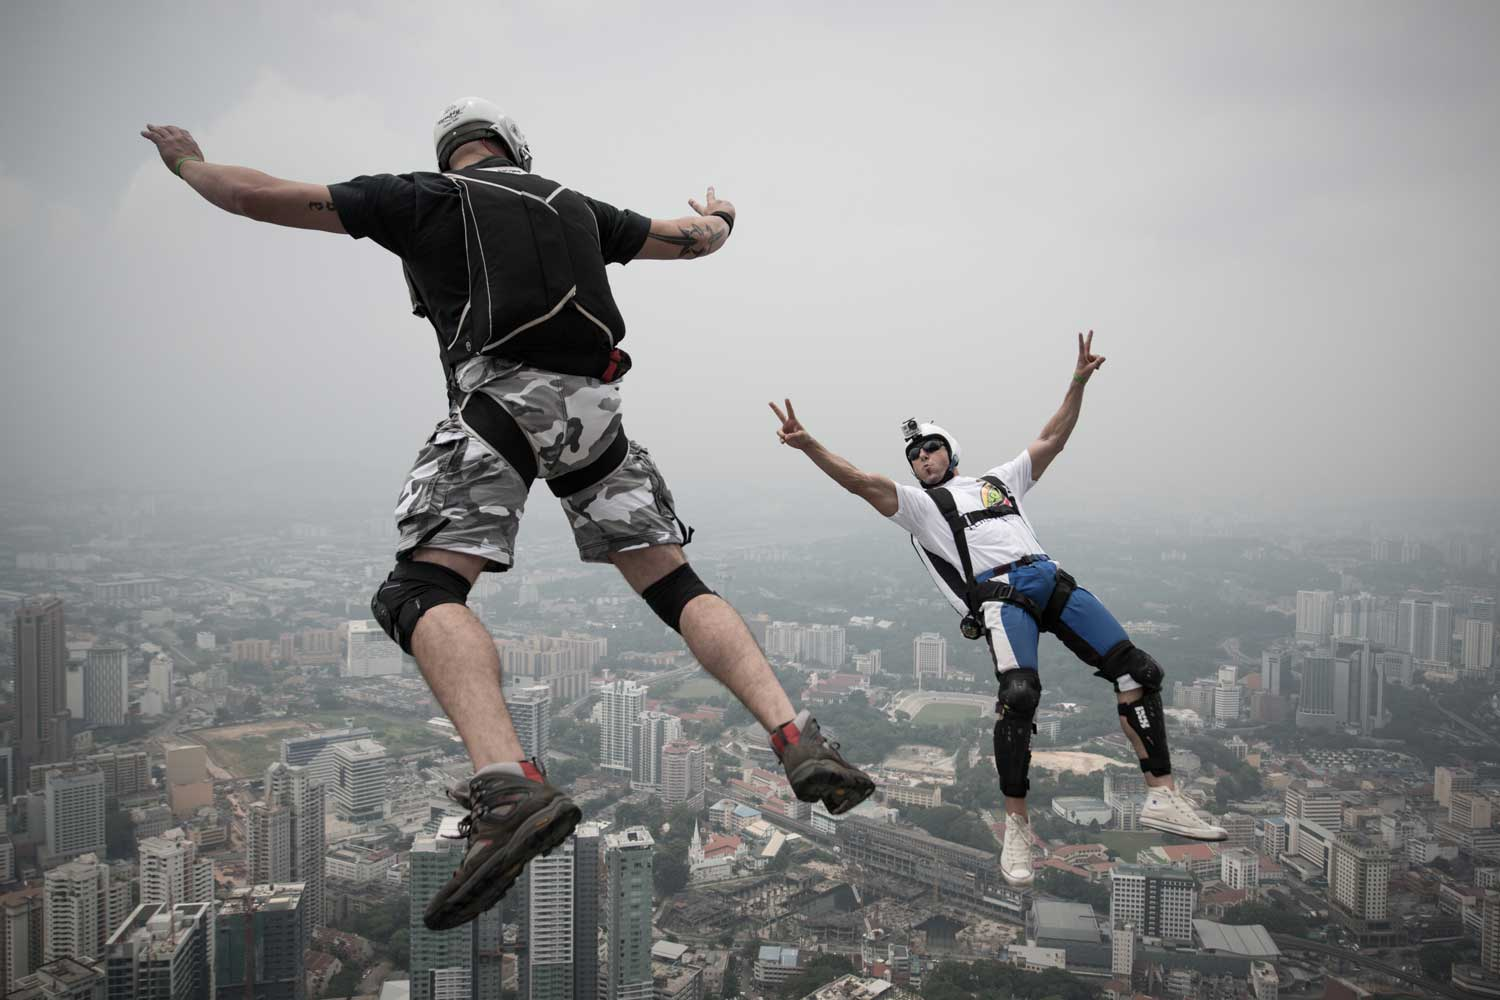 Base jumpers leap from the Open Deck of the Kuala Lumpur Tower in Malaysia.